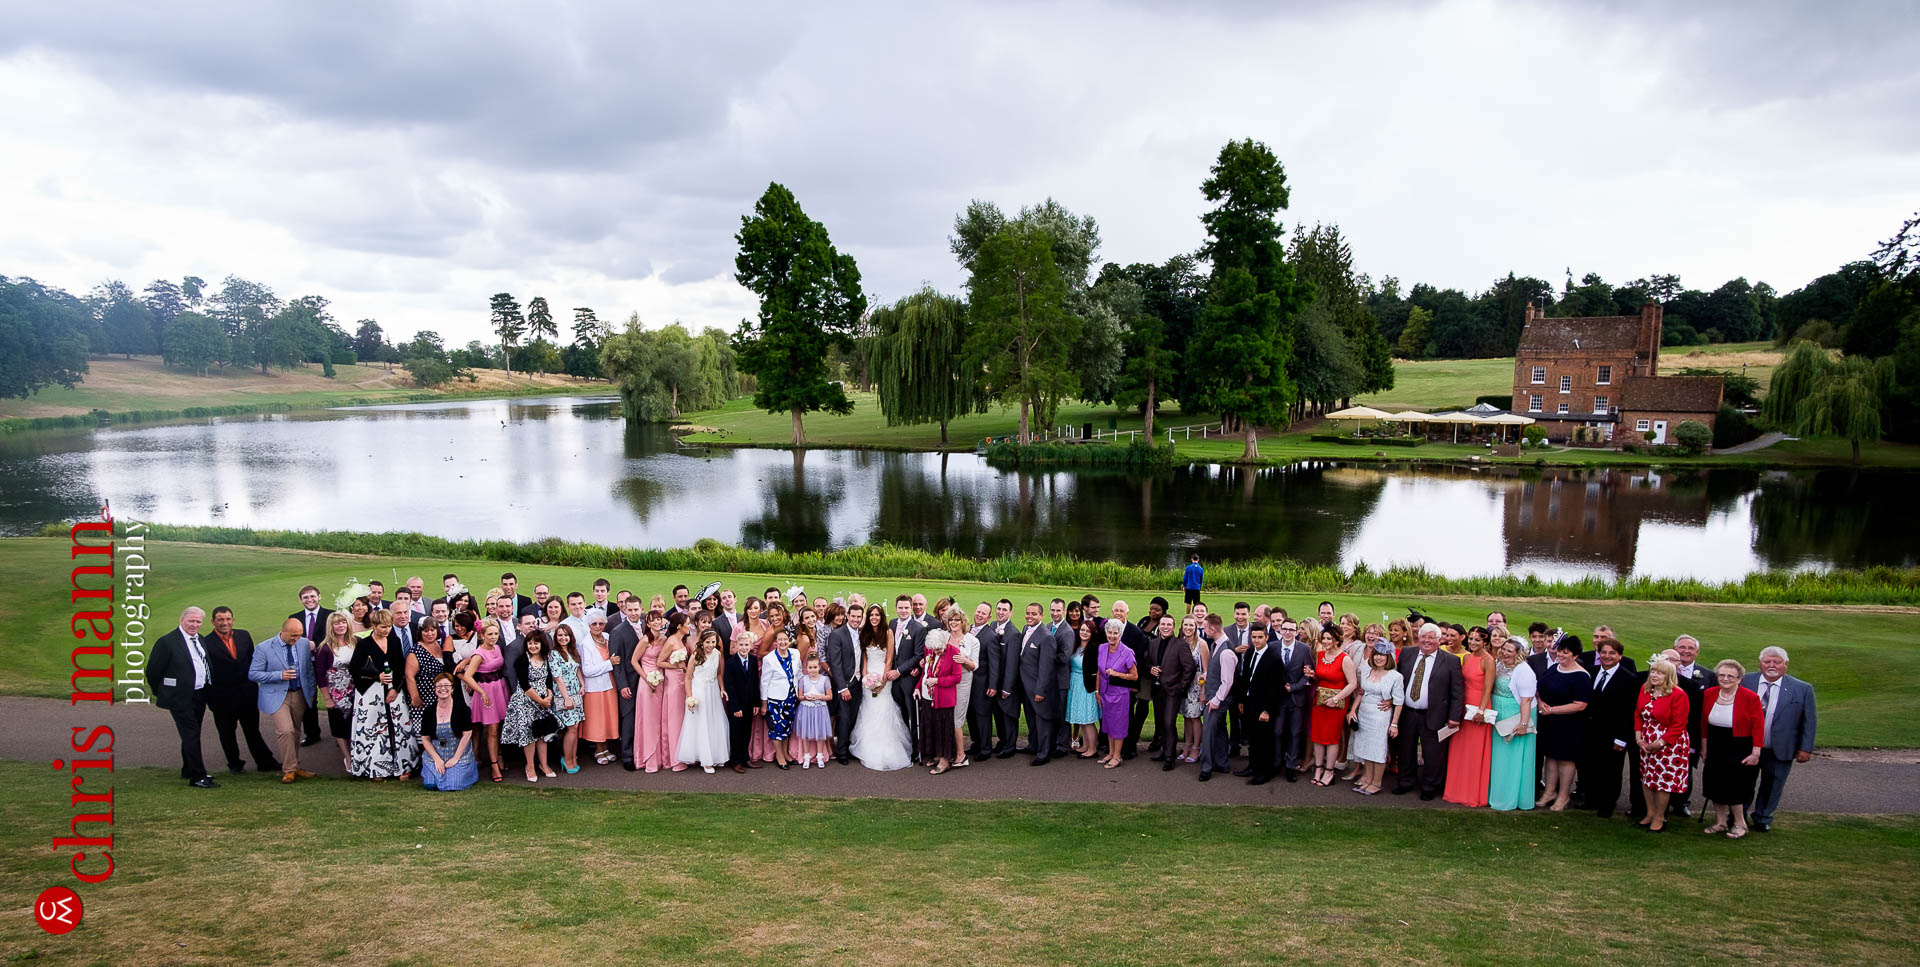 wedding group photo Brodwater Lake Brocket Hall golf club